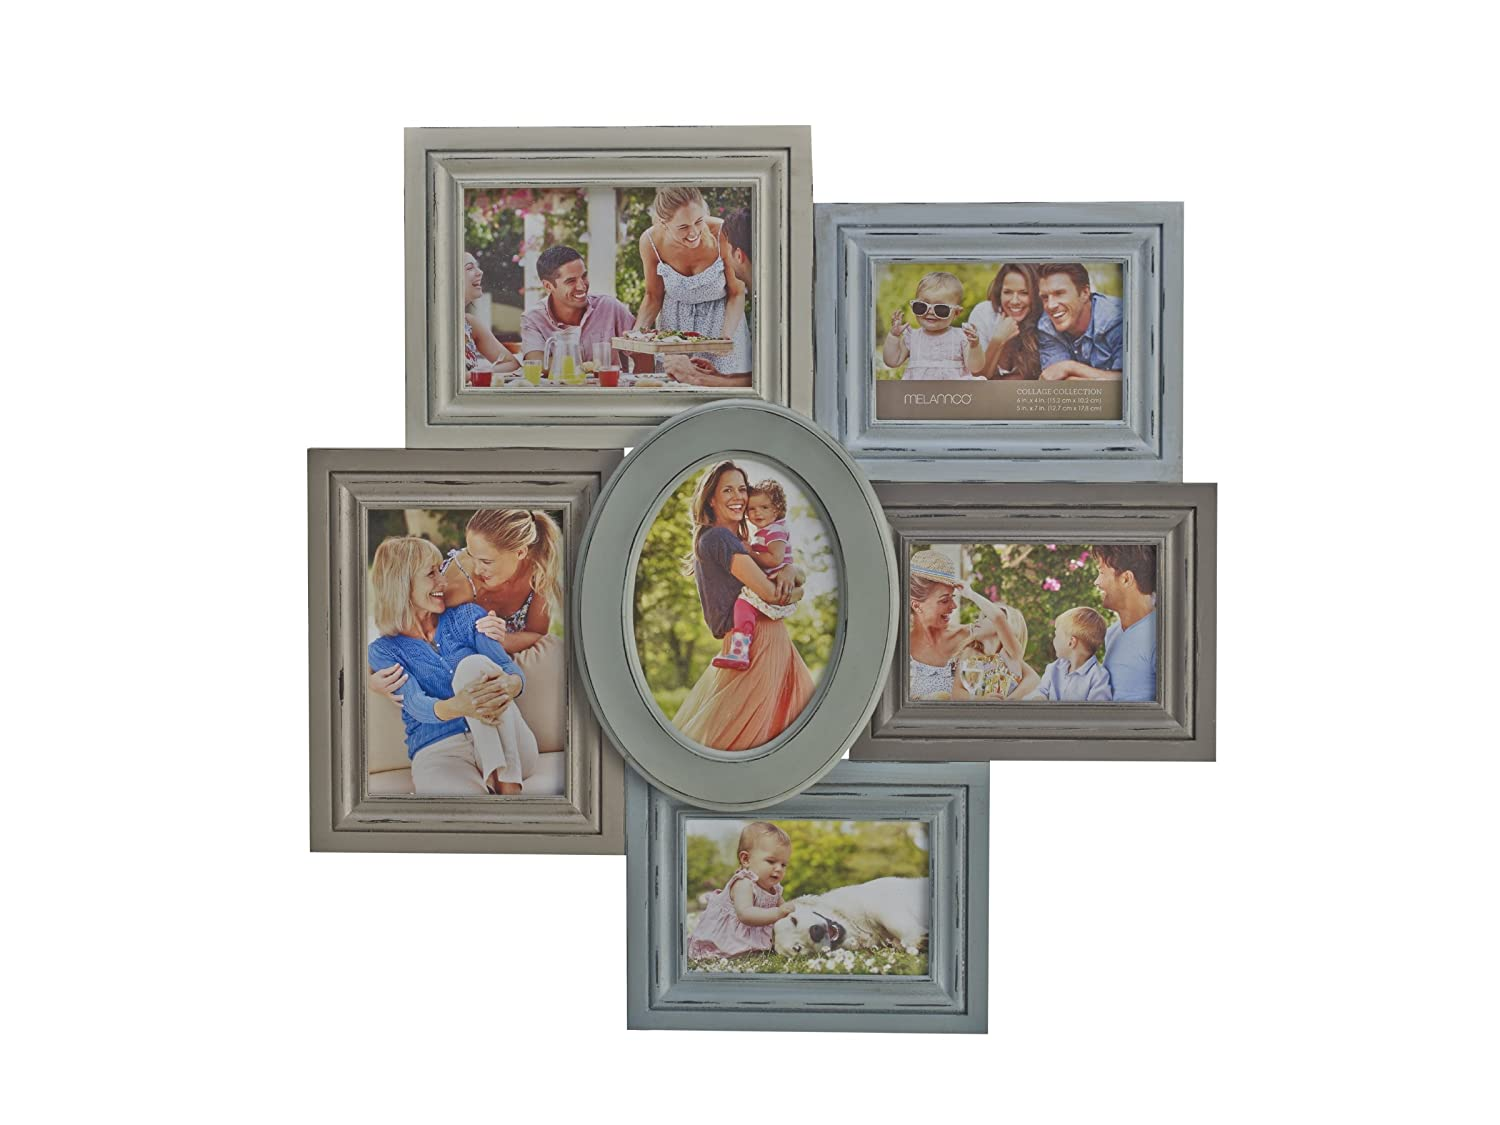 Amazon.com - MELANNCO 6-Opening Distressed Collage, 20.5-Inch-by ...